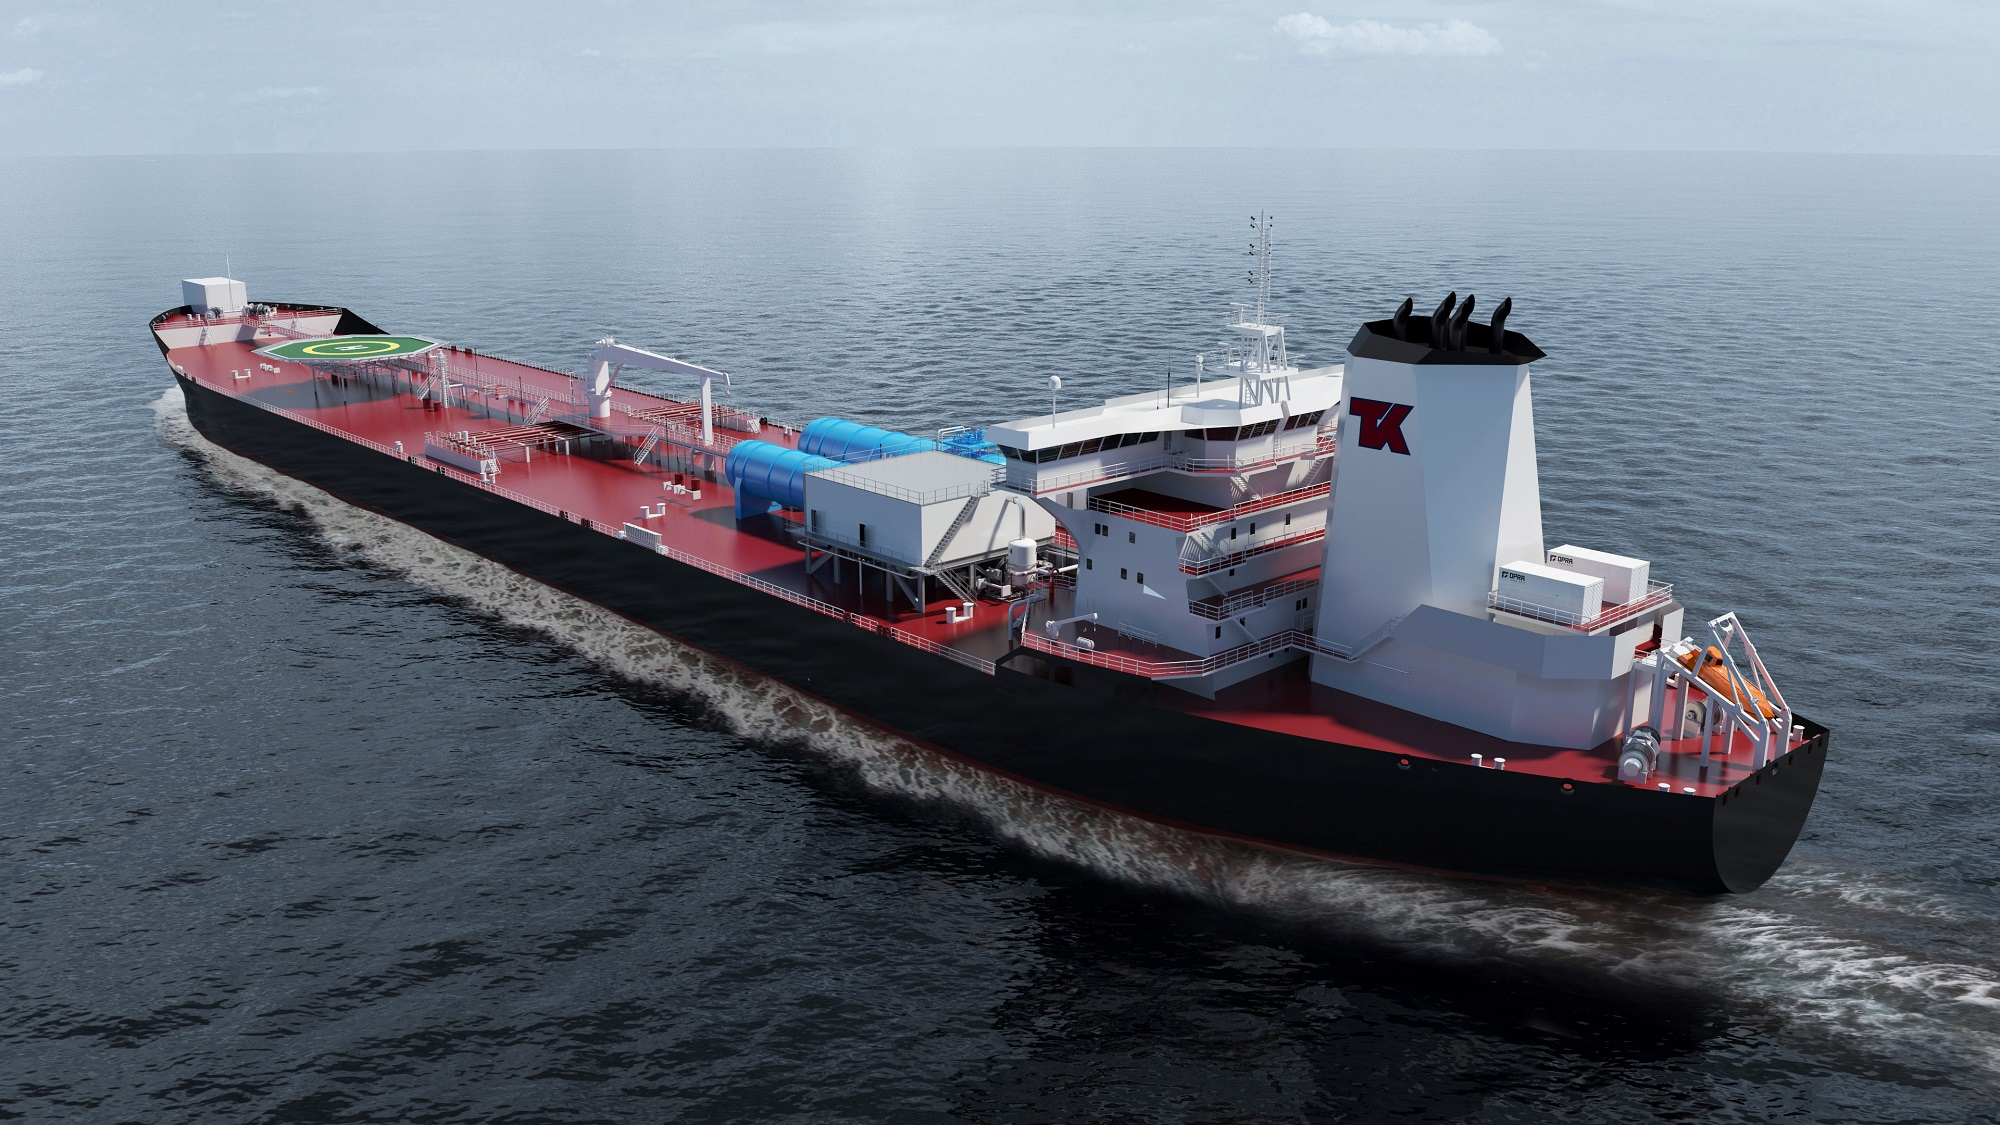 Teekay Offshore Announces Two Newbuilding Shuttle Tankers – With